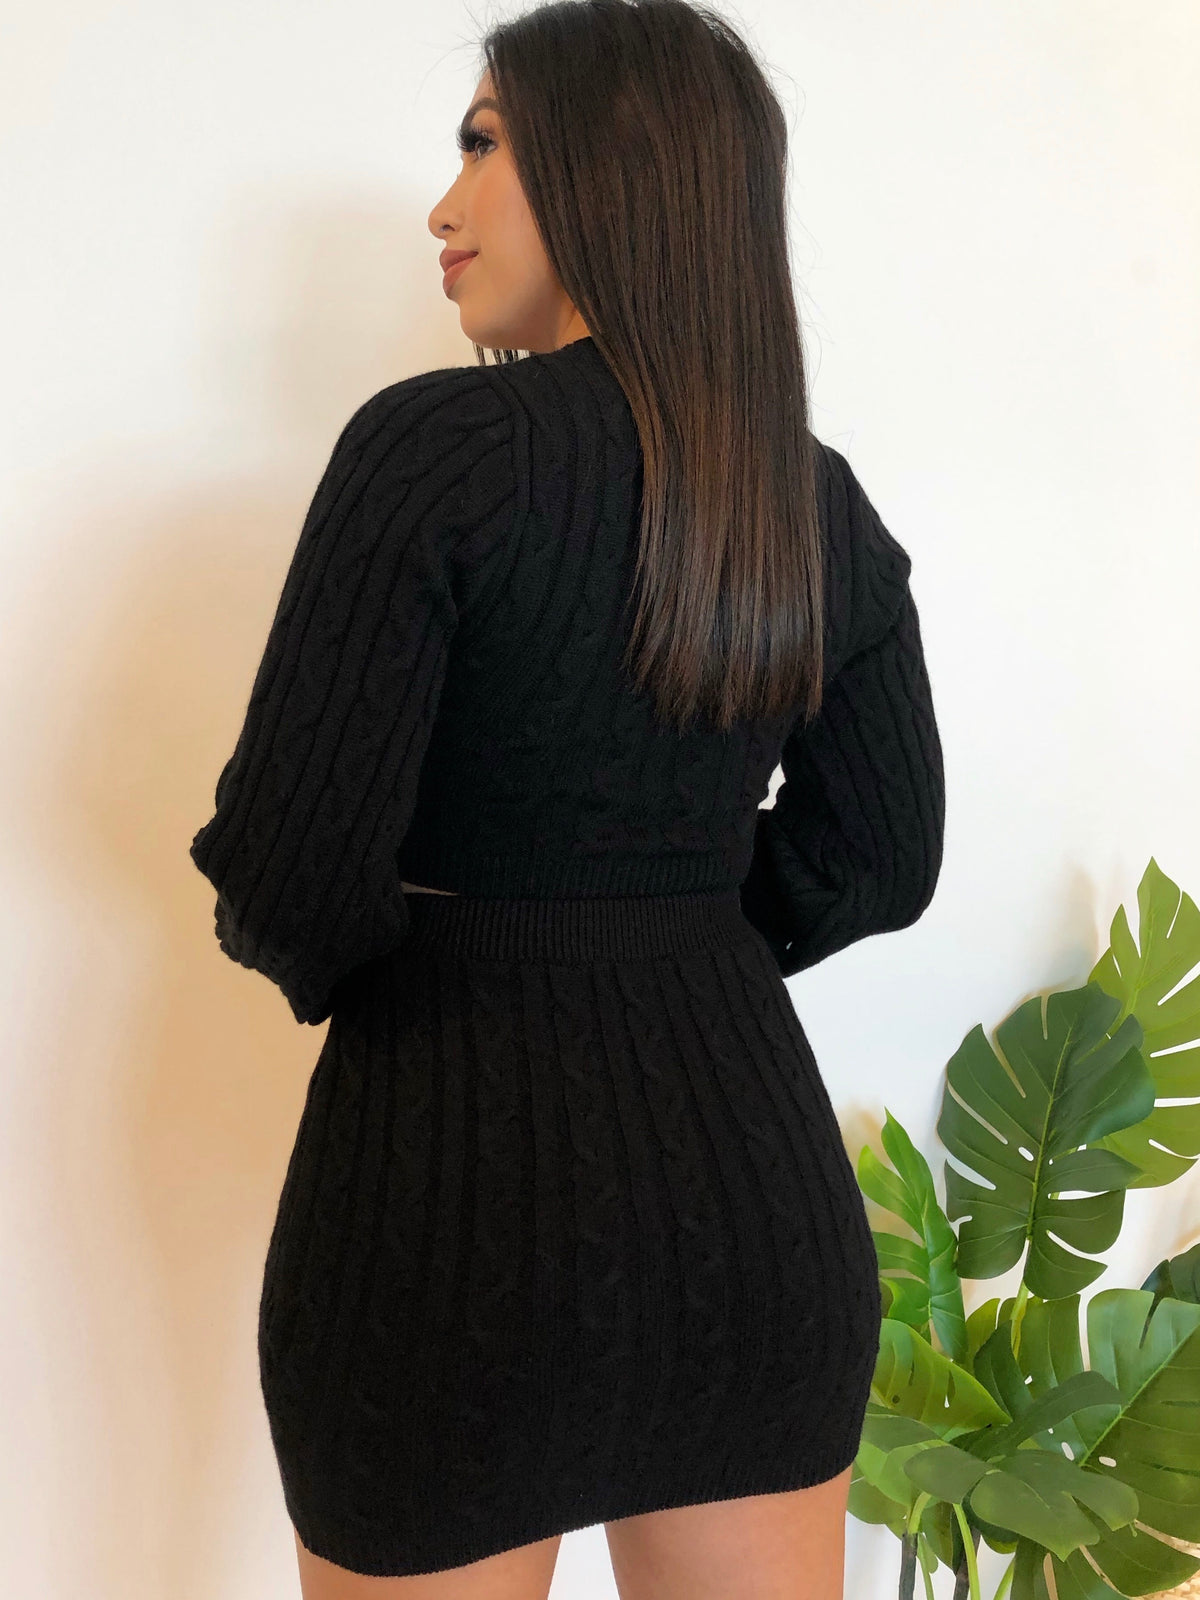 black 2 piece, long sleeve, high waist skirt, crop top, knit 2 piece, v cut